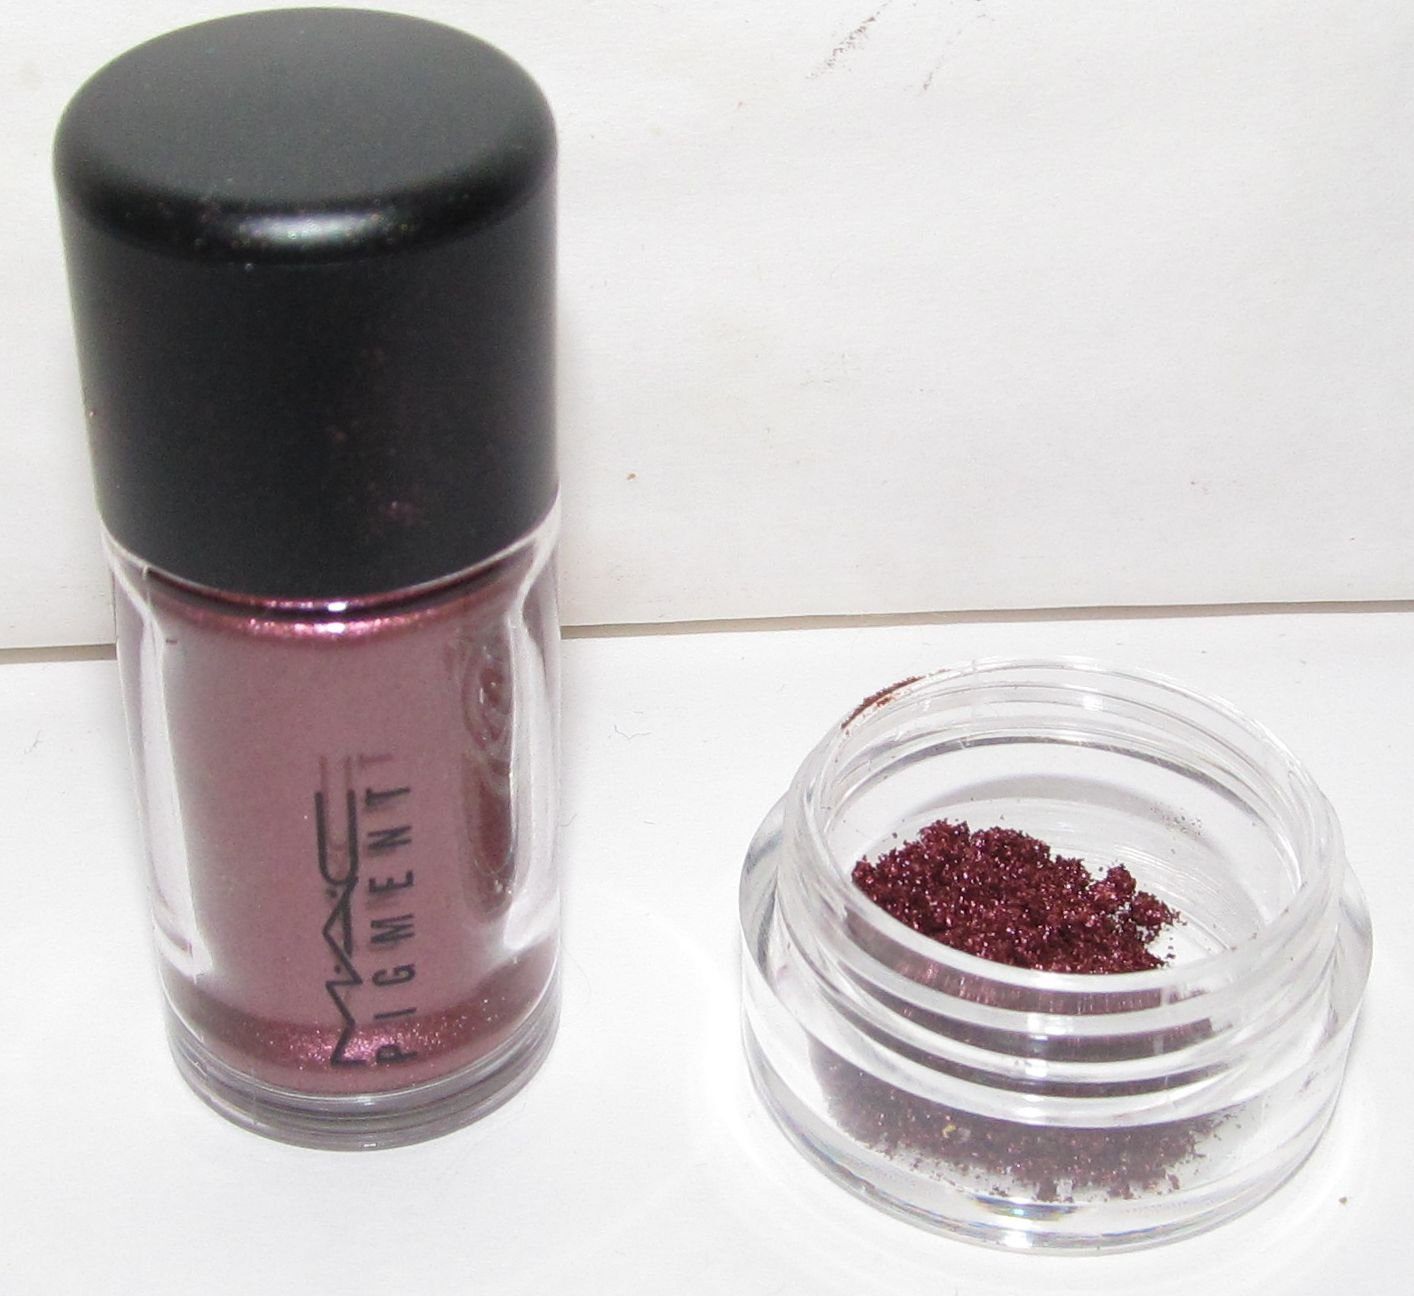 MAC Pigment Sample - Shine Time 1/4 tsp Sample